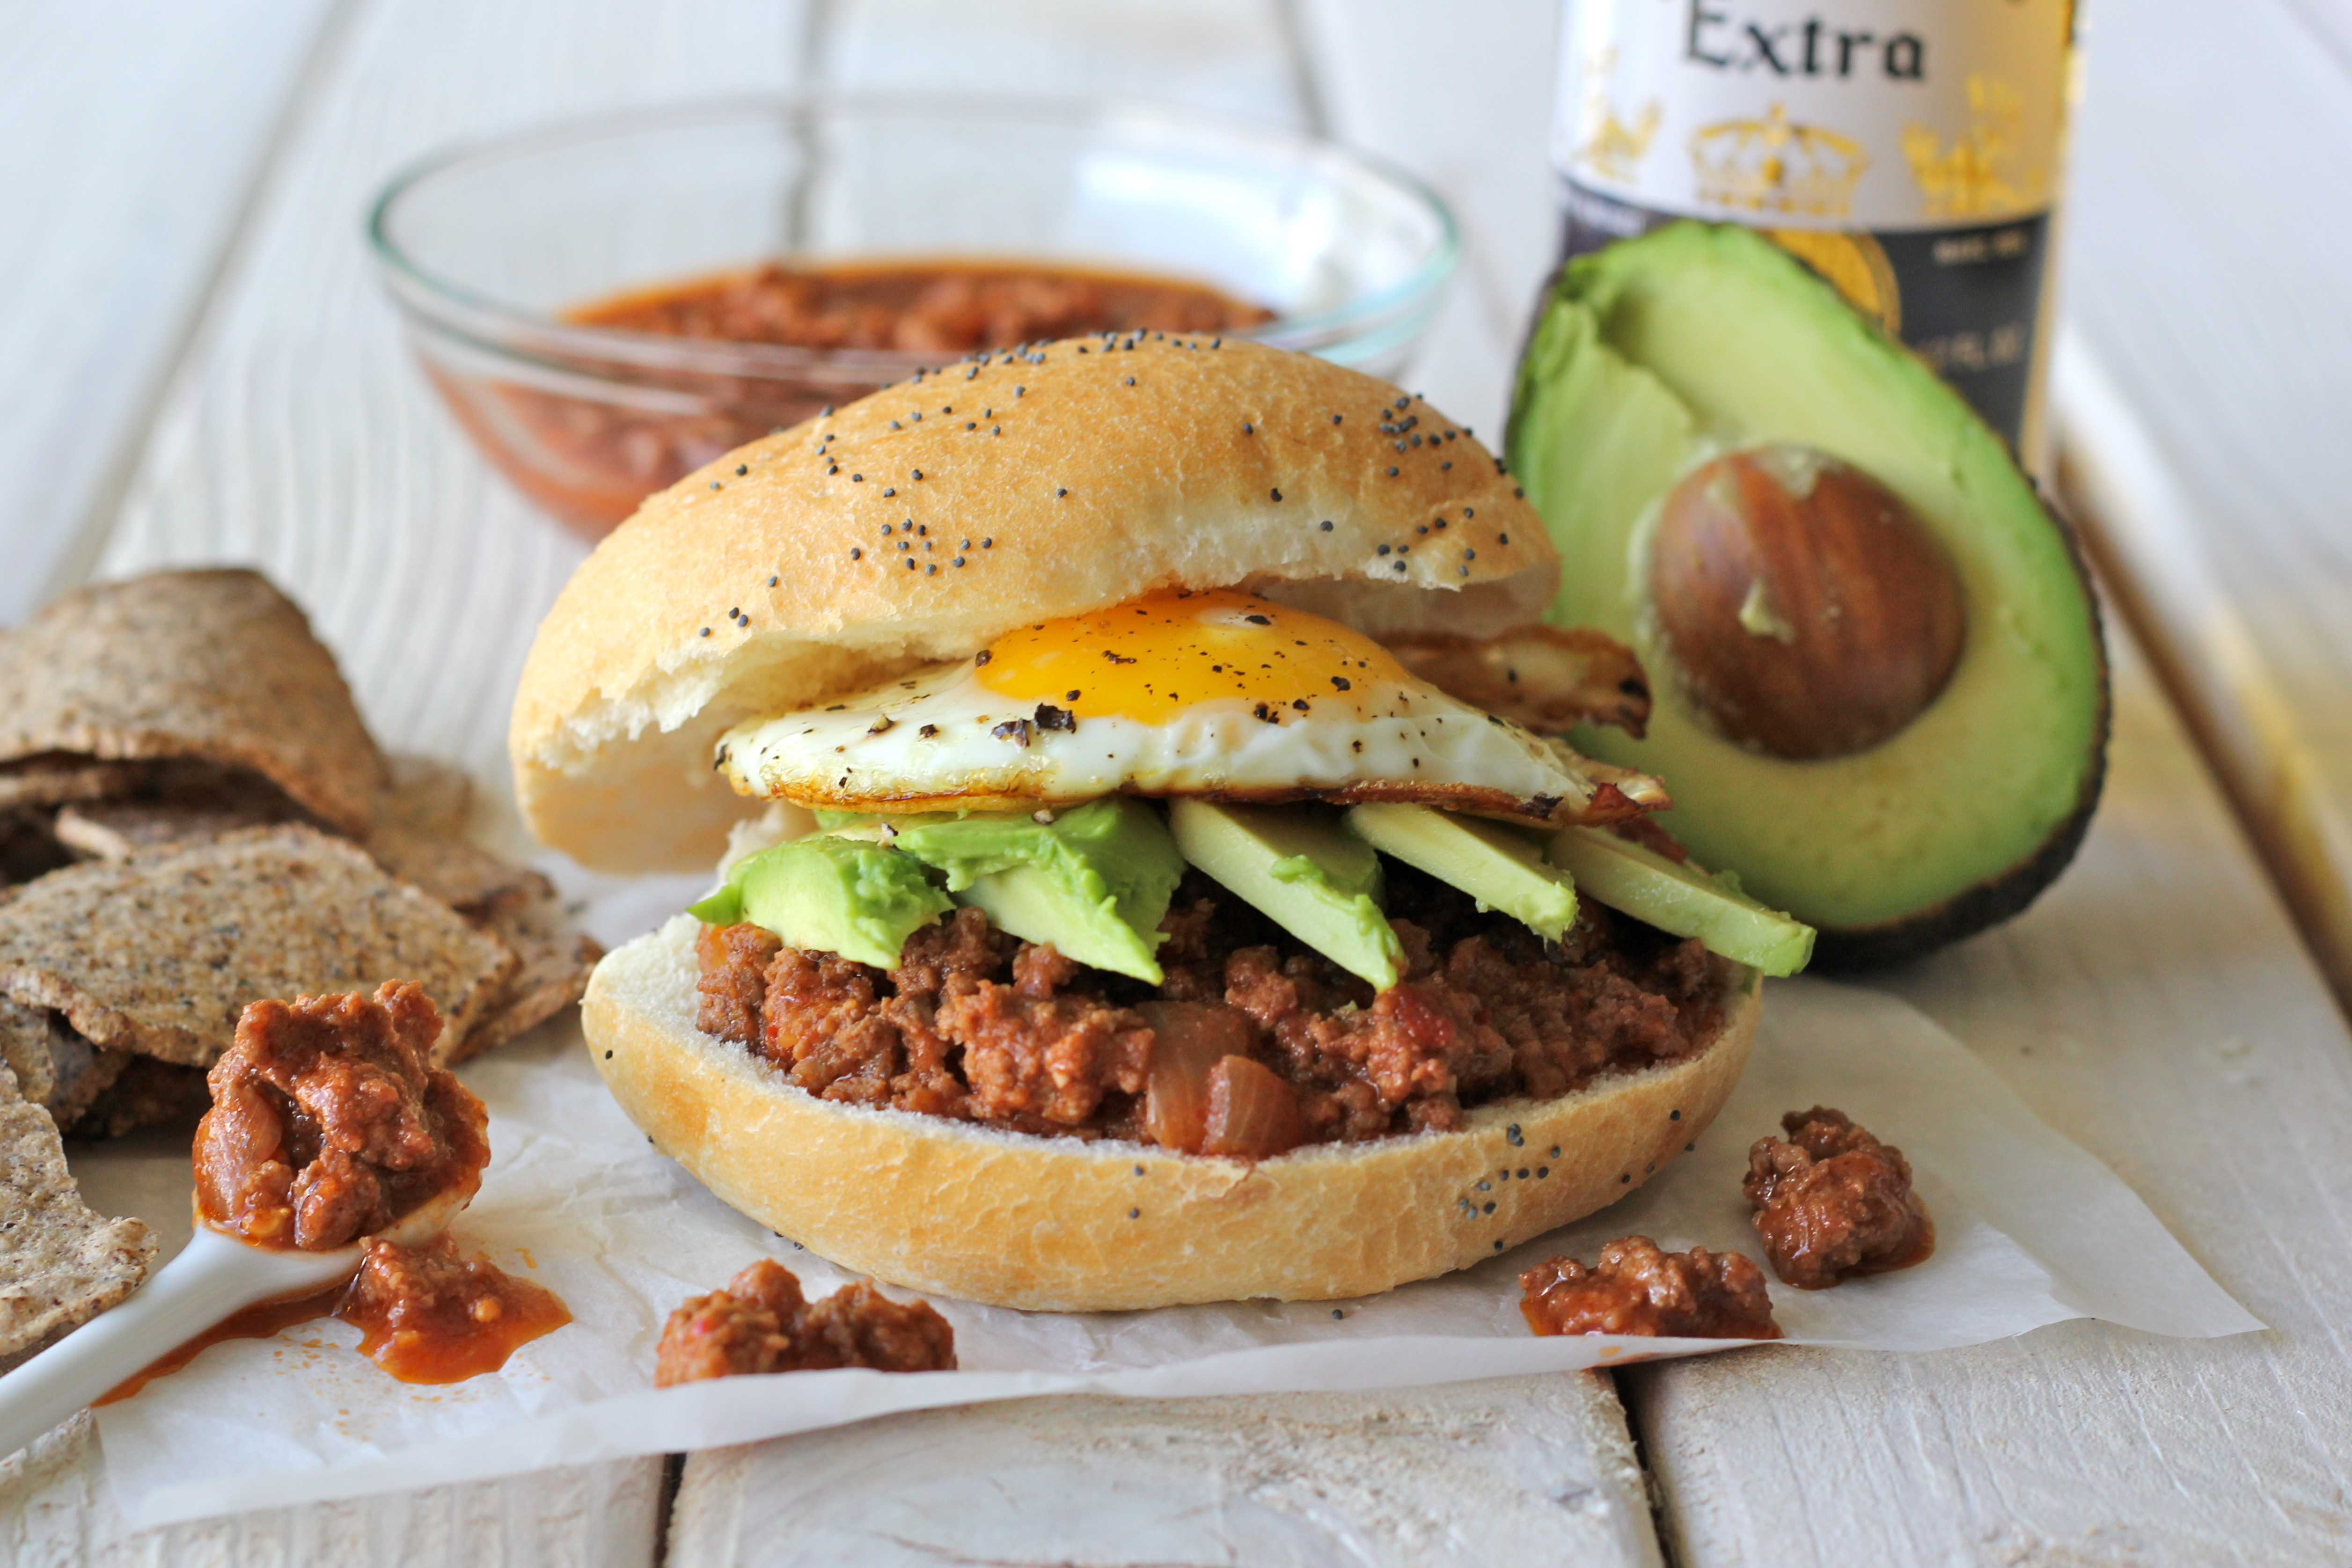 Sloppy Joes with Avocado and Fried Egg - Damn Delicious